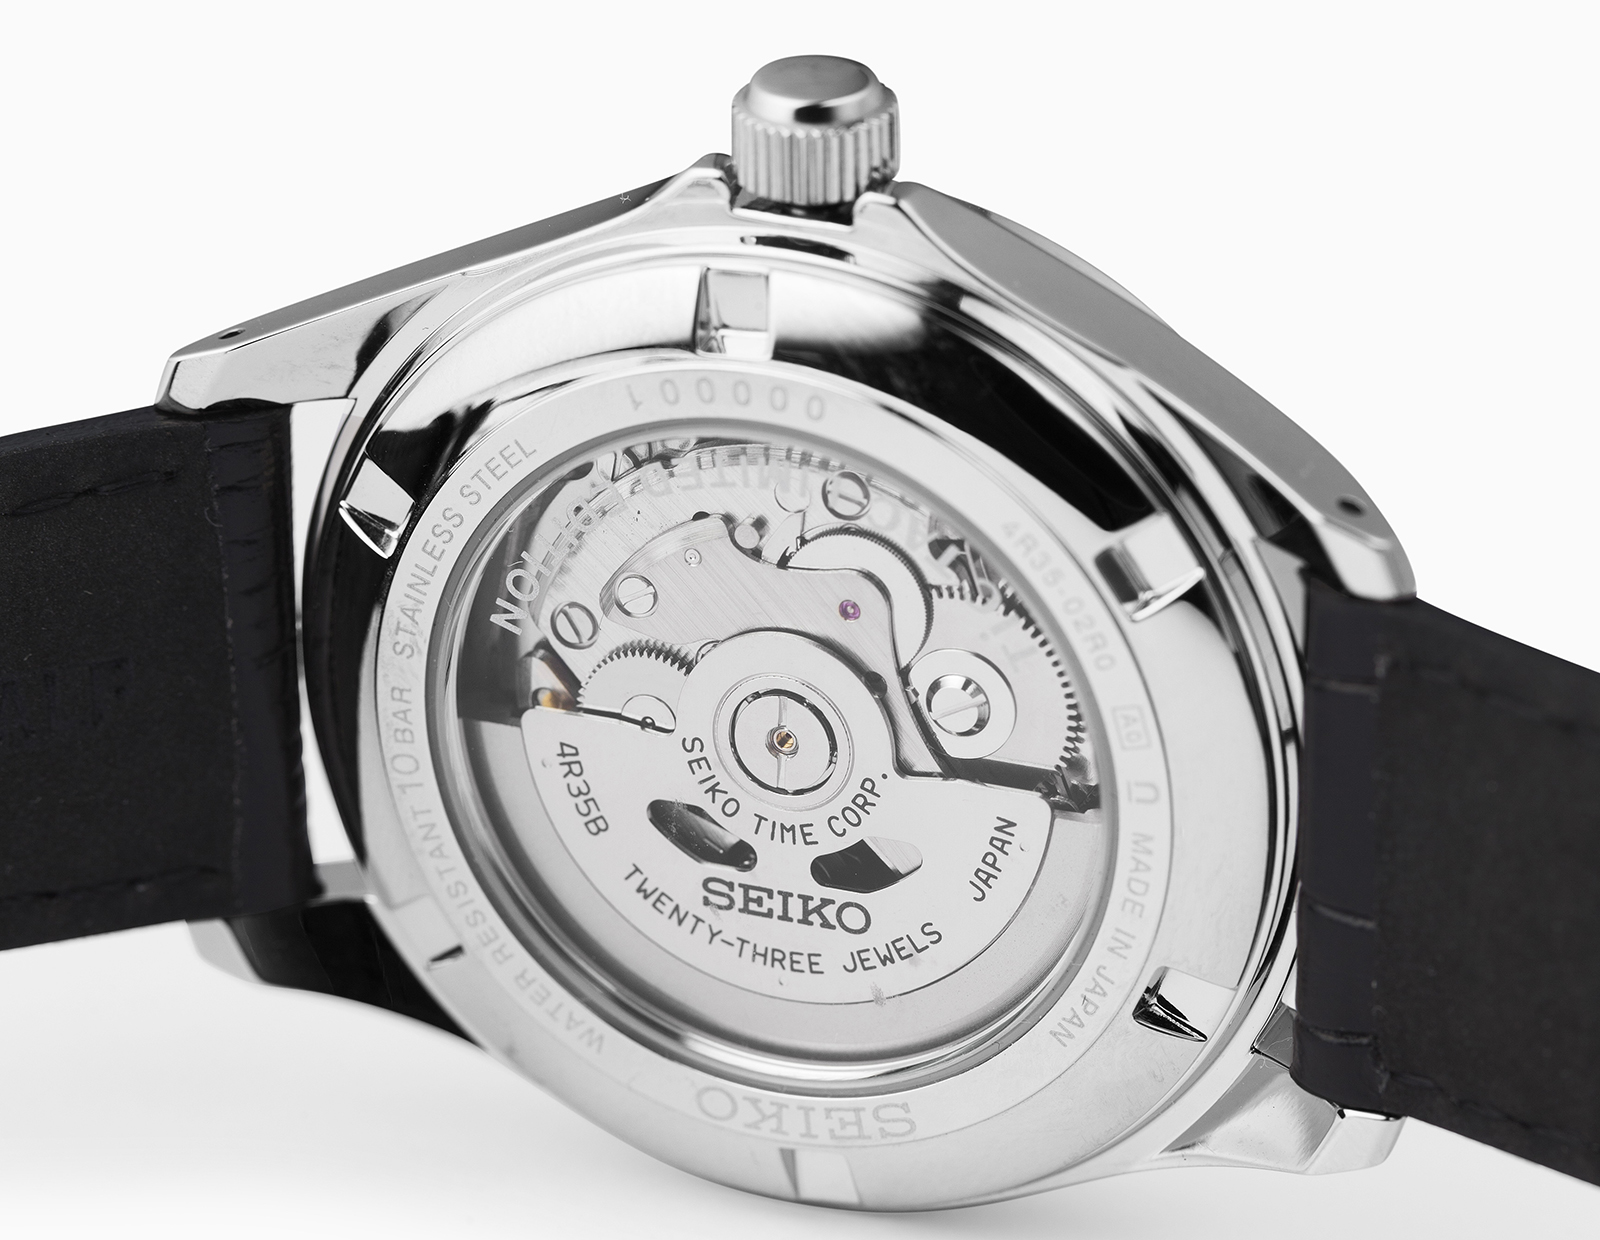 On the back of the watch, the 4R35 caliber is visible, a power workhorse of the company and usually seen on its Prospex models.